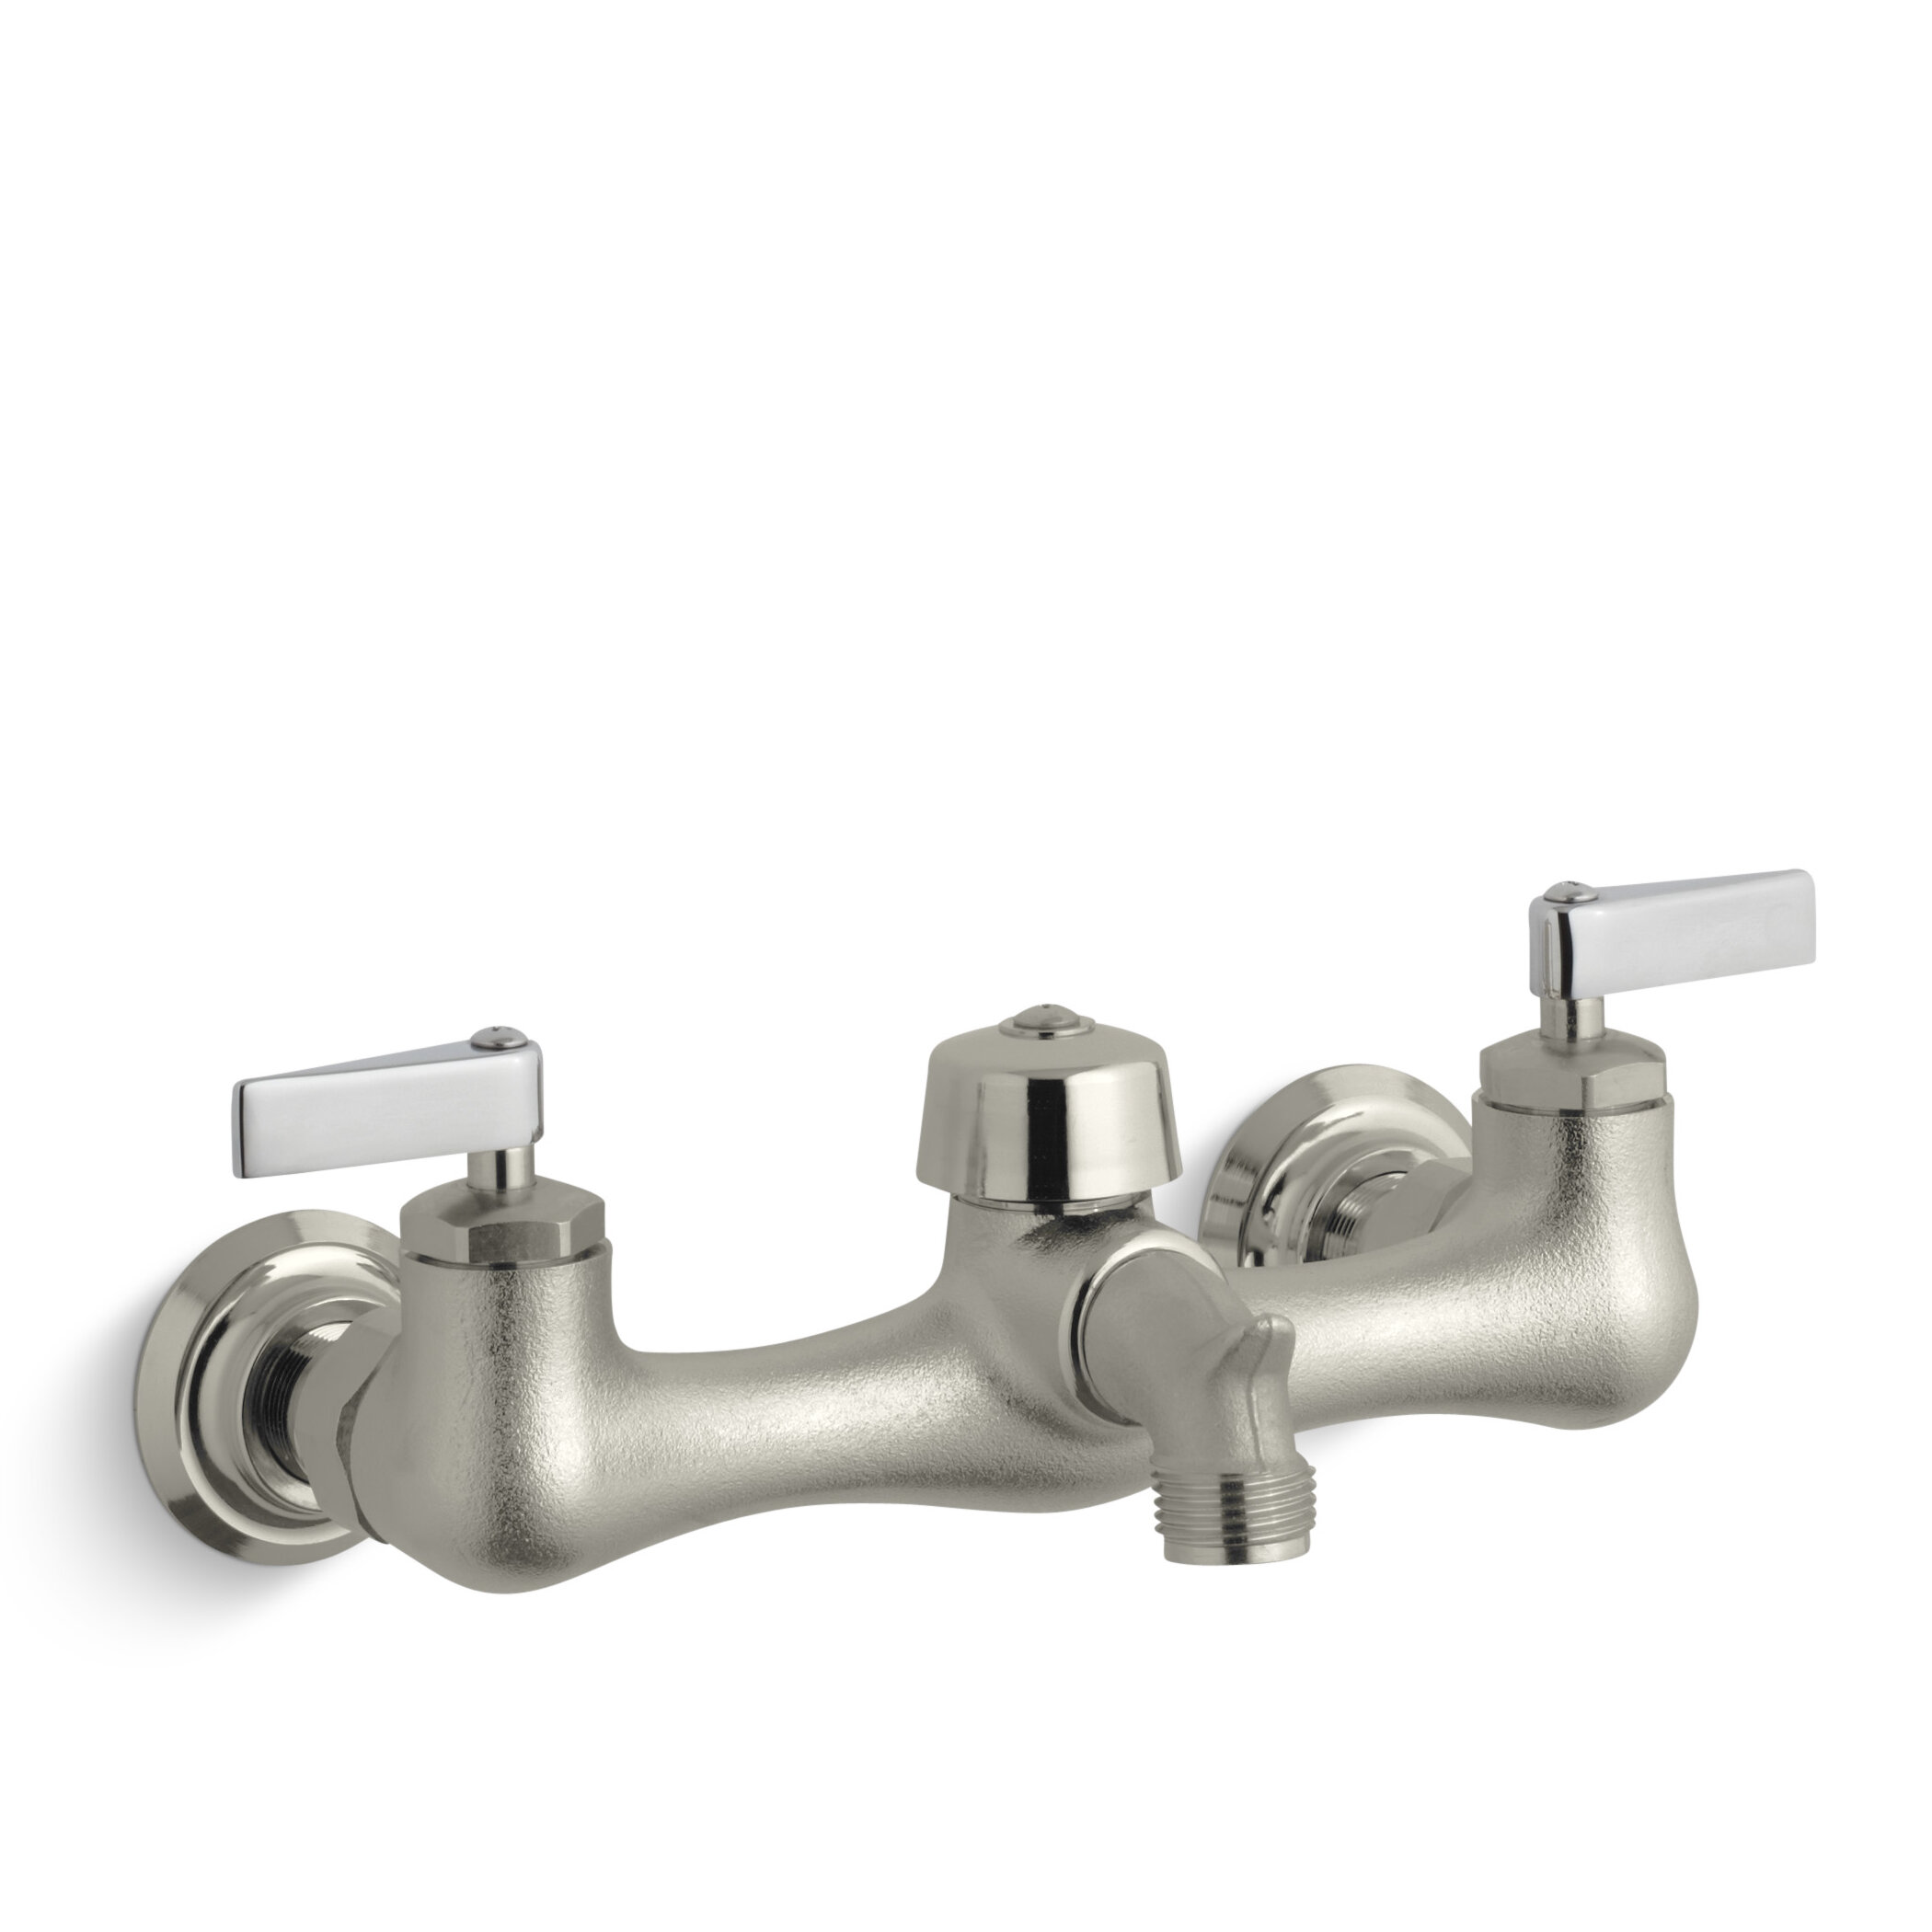 fresh vacuum height with faucet sink breaker picture mop crane service of